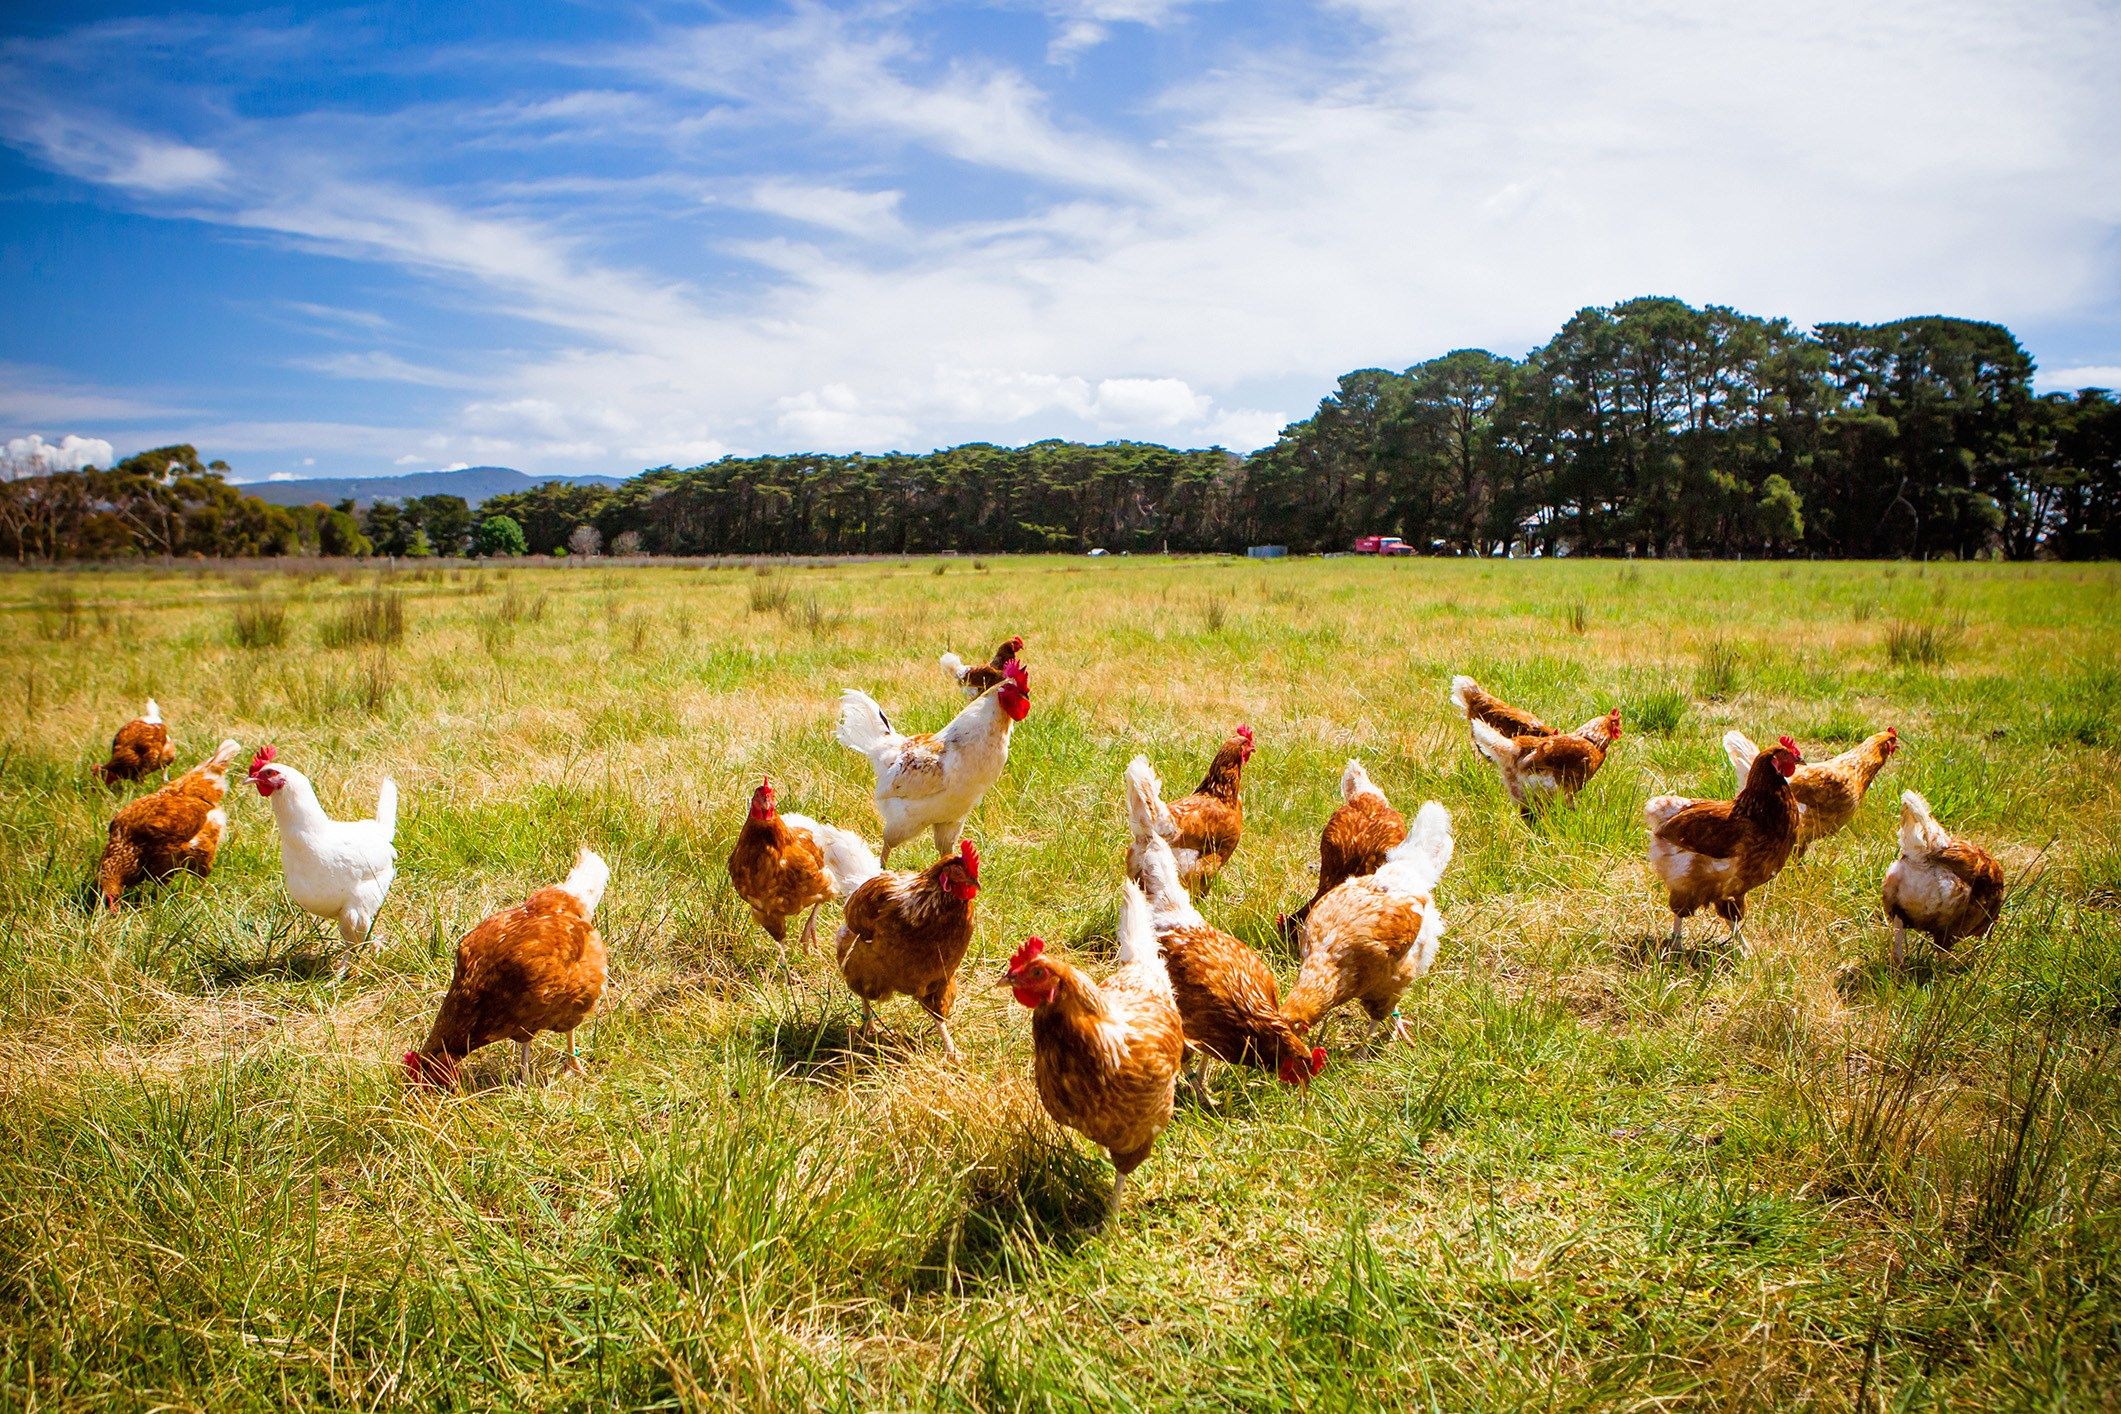 How safe is Chlorinated Chicken?